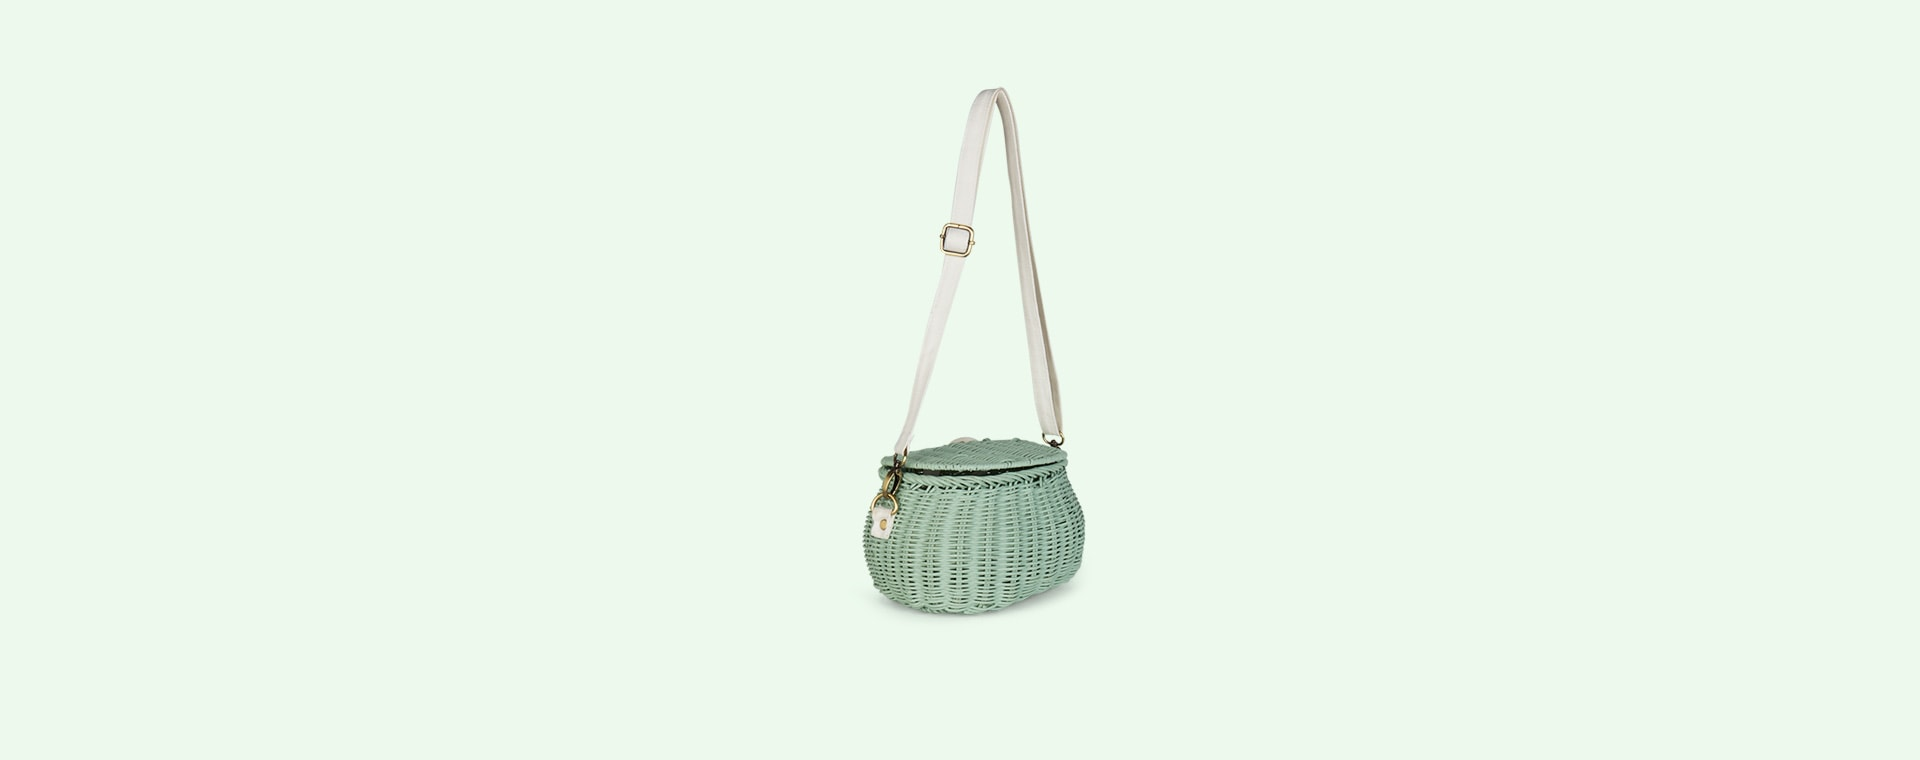 Mint Olli Ella Chari Bag